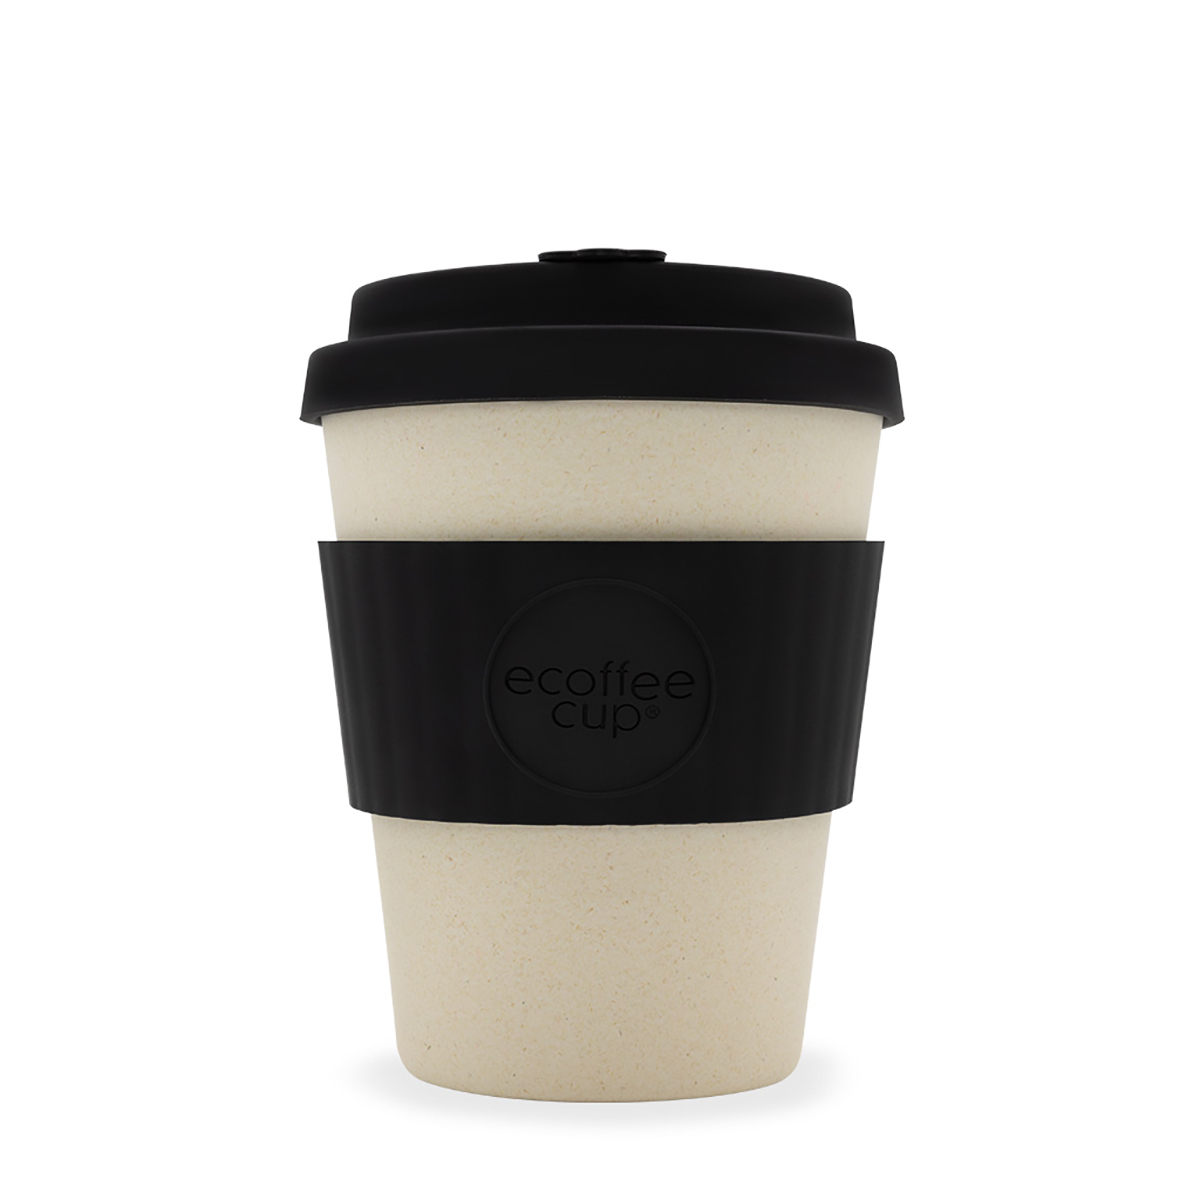 Domestic disposable cups or glasses or lids Ecoffee Eco 12oz Black Nature Cup Ref 0303028